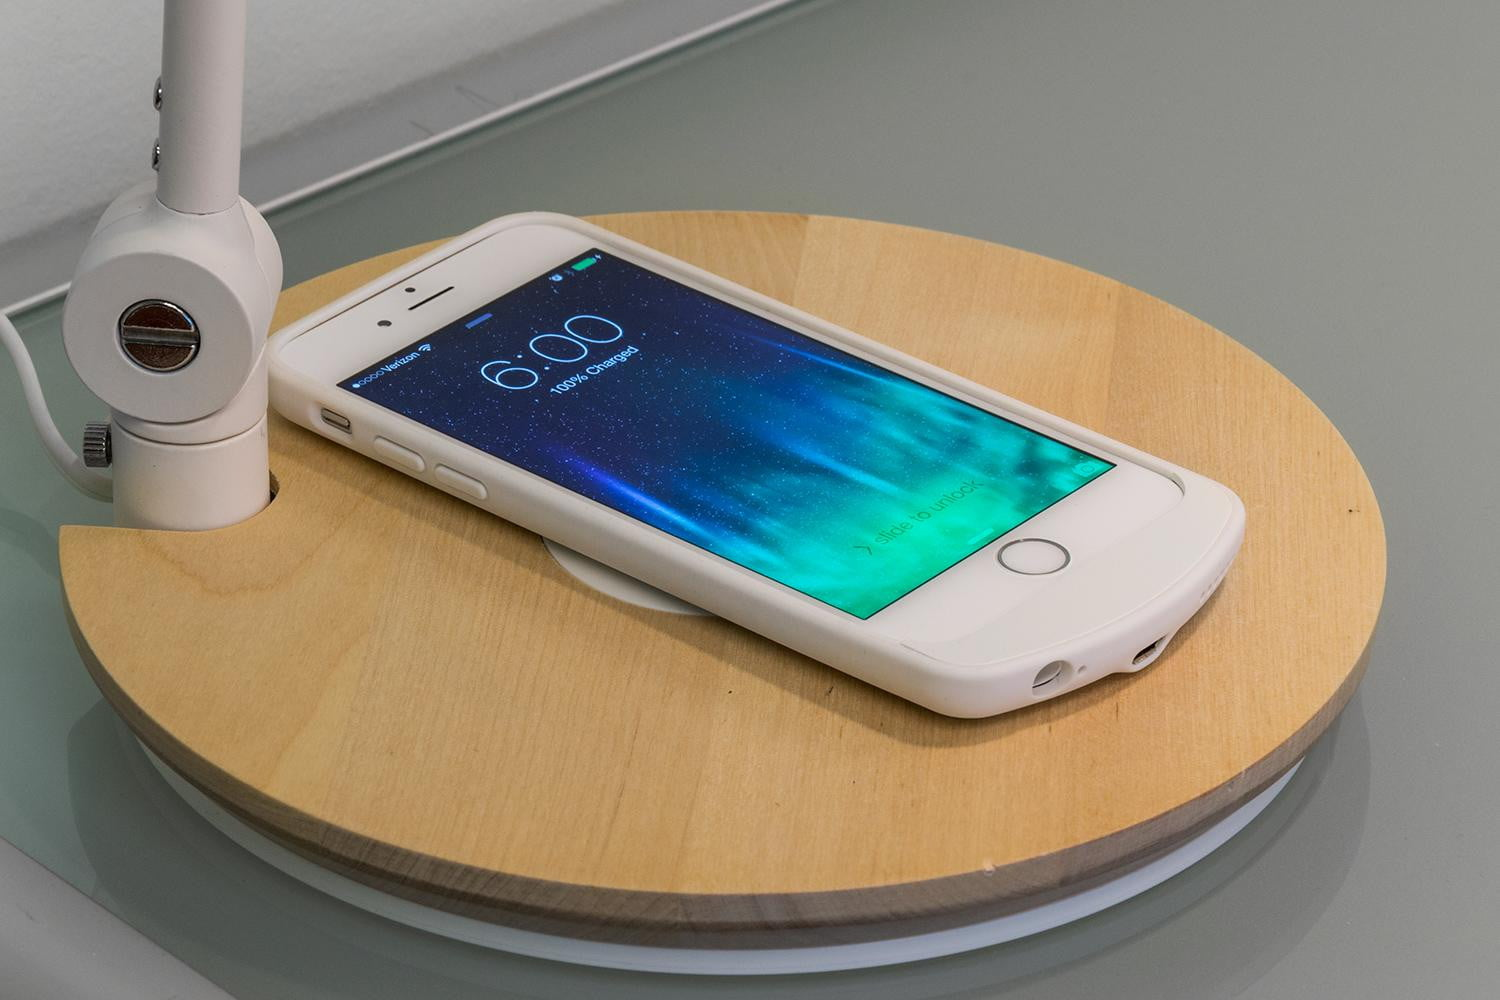 Iphone 5 Wireless Charging Ikea Wire Center Genuine Mercedes Benz 1644402513 Electrical Wiring Harness Funiture Review Nordm Rke Riggard Vitahult Rh Digitaltrends Com Accessories